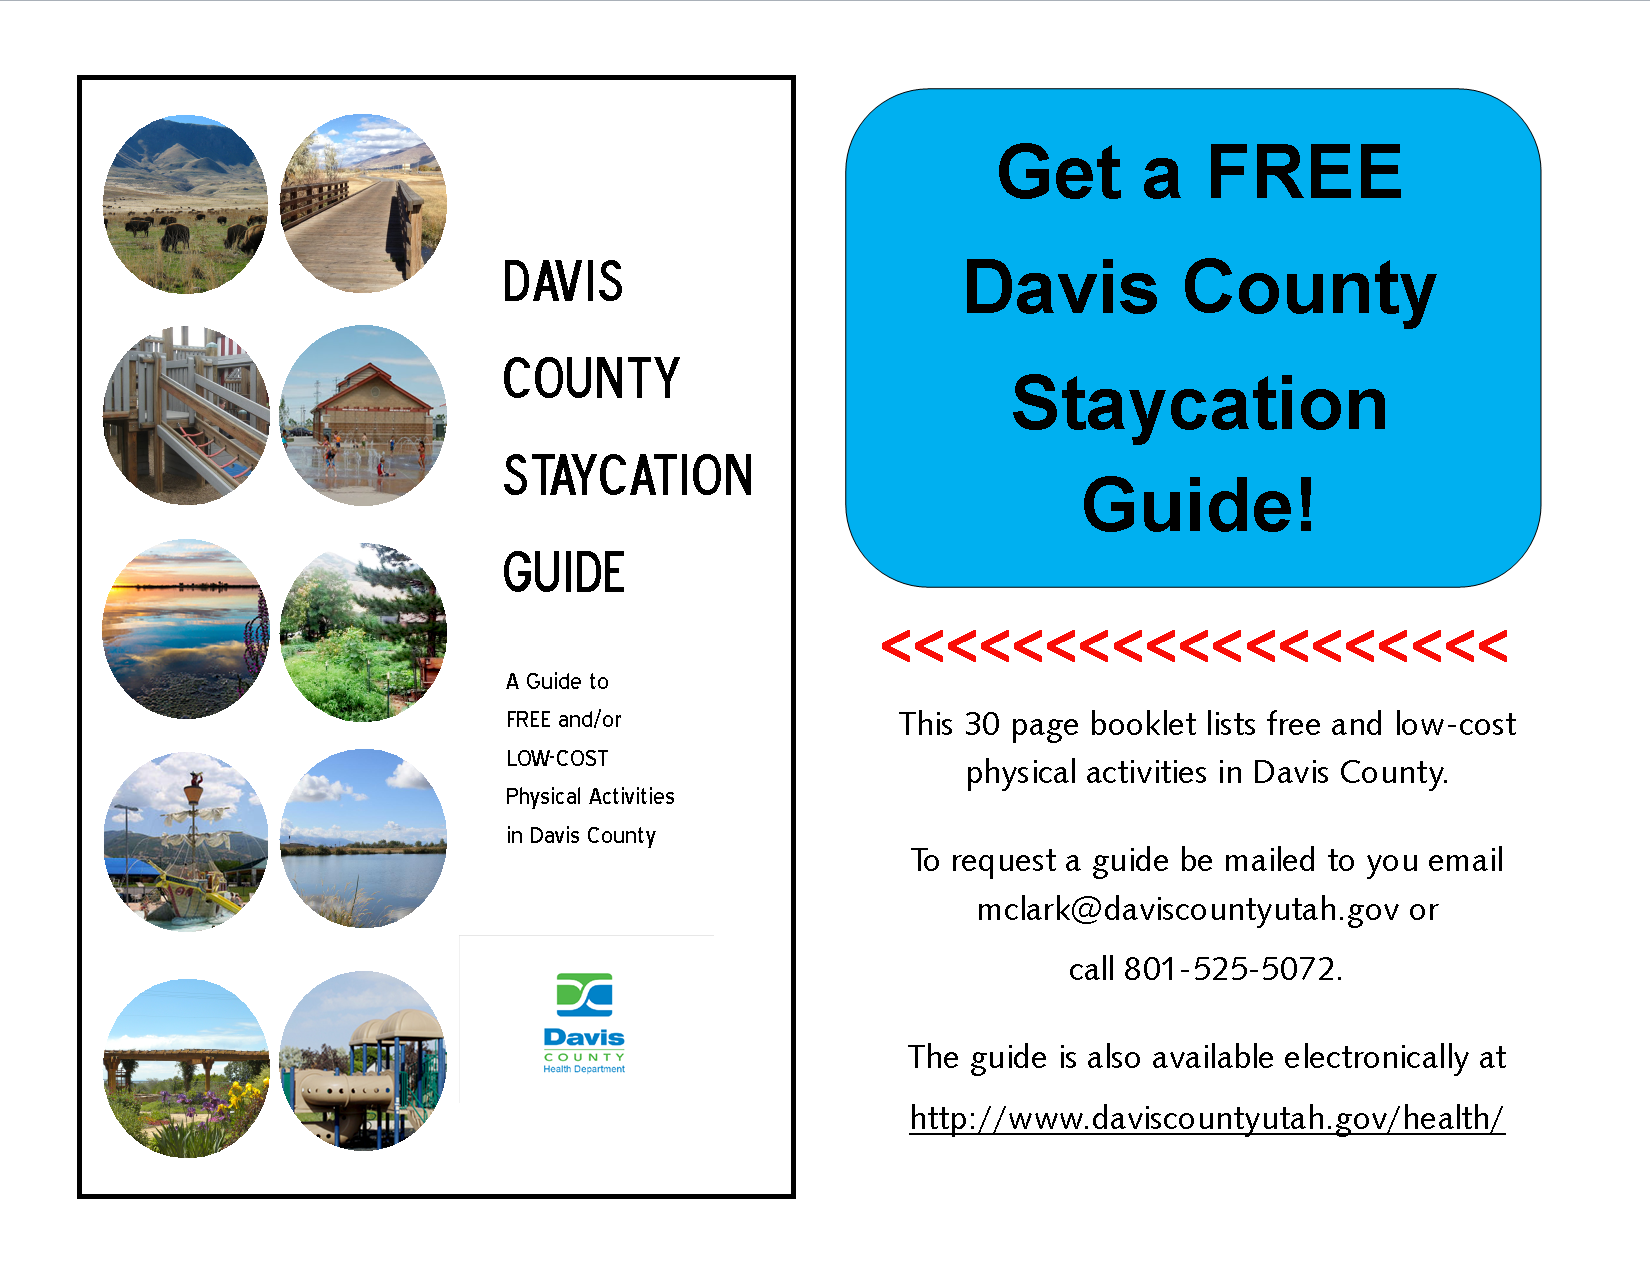 Download A Copy Of Our Free Davis County Staycation Guide Http Go Usa Gov 37awa Physical Activities Staycation Activities